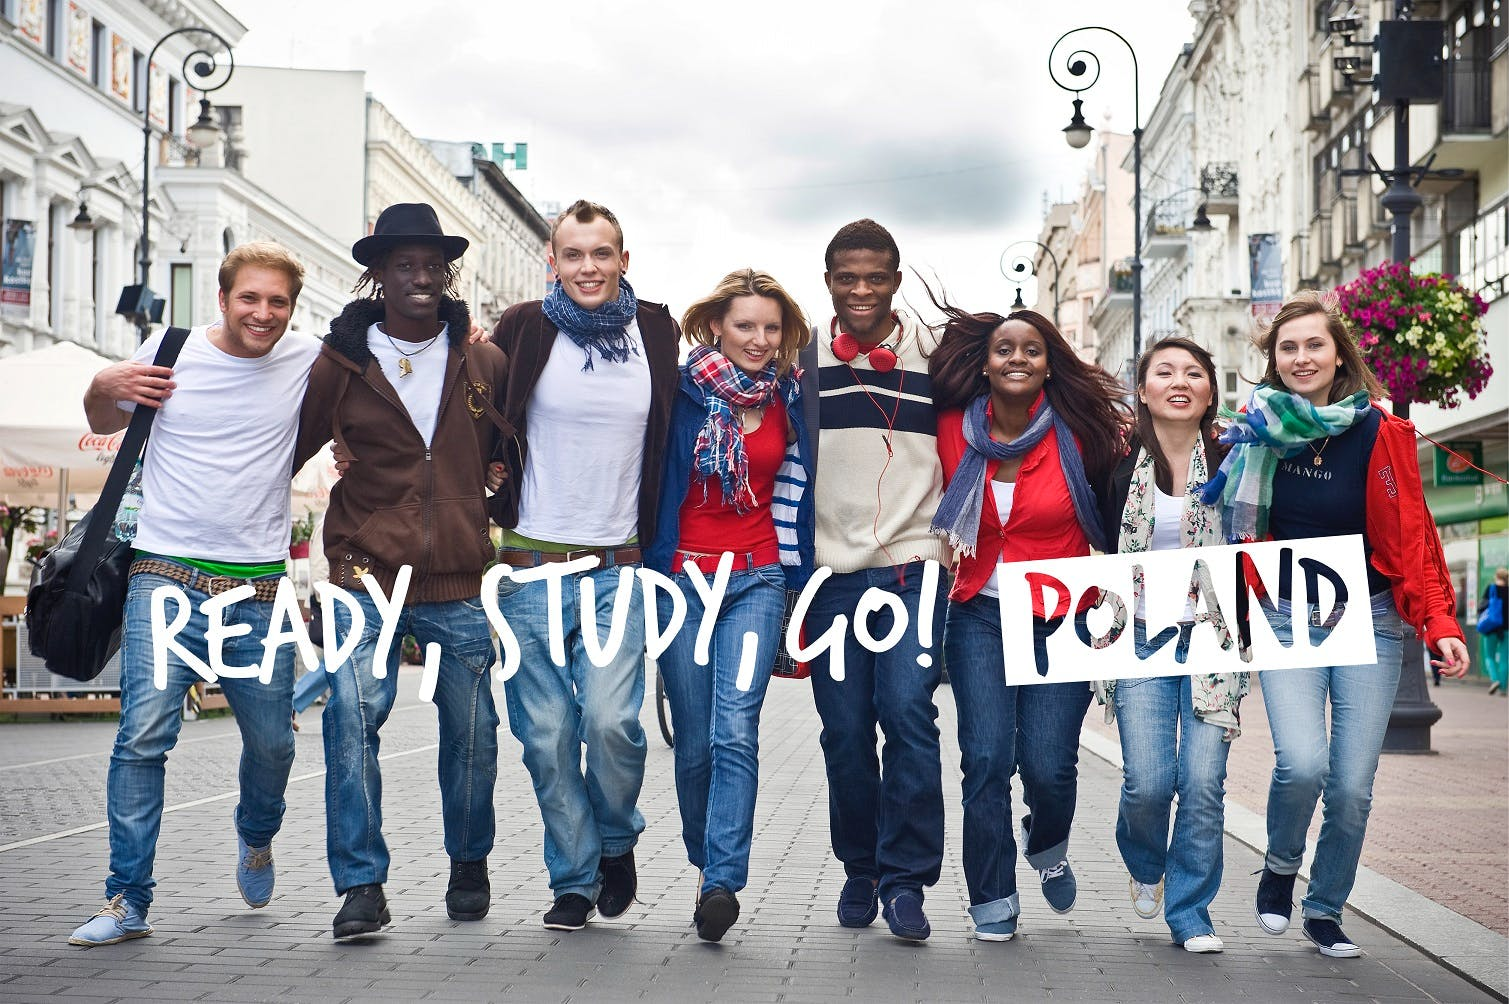 Ready, Study, Go! Poland